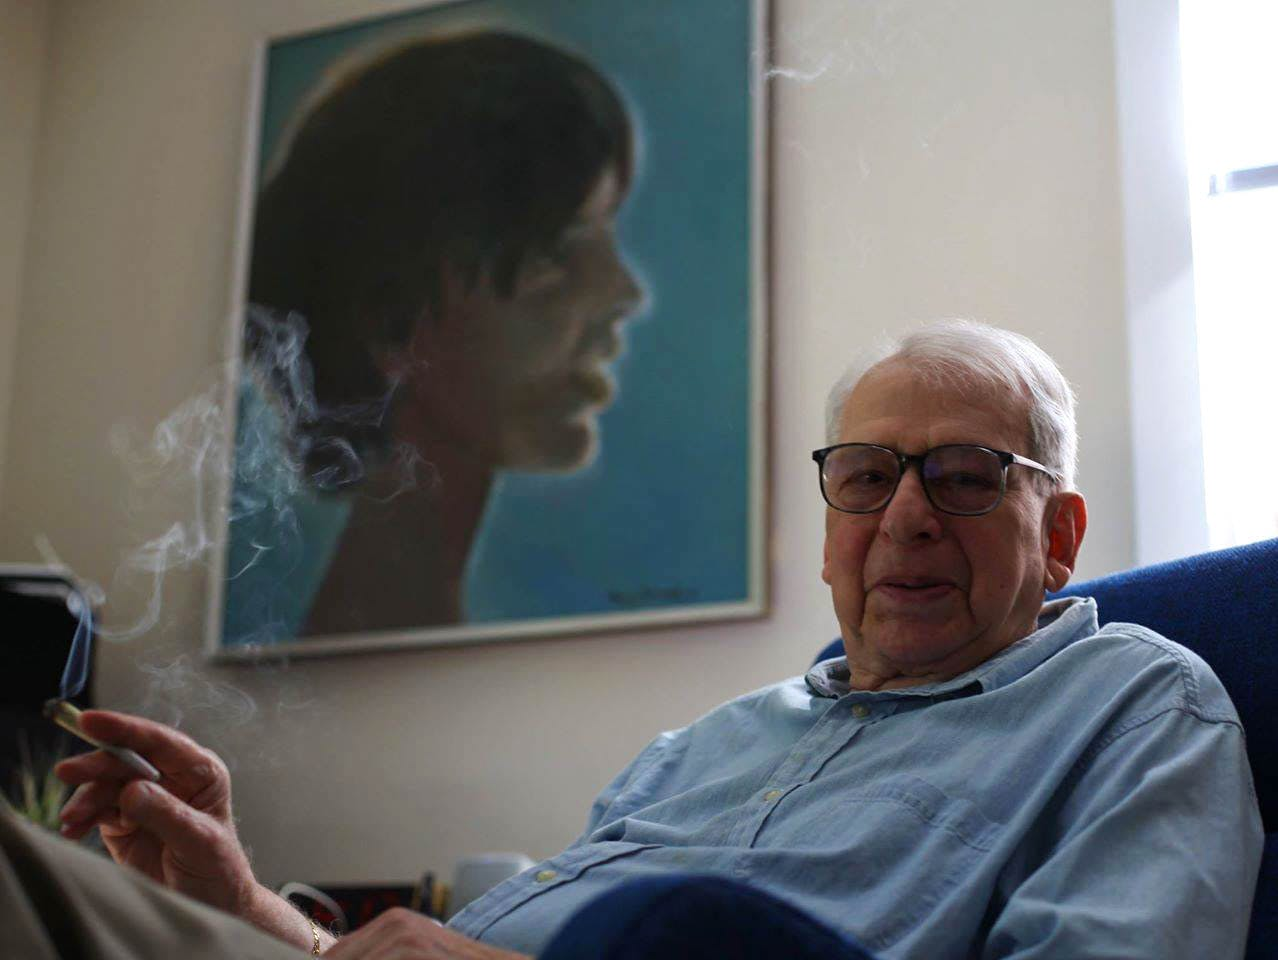 Lester Grinspoon is in Herb's roundup of the best weed quotes throughout history.